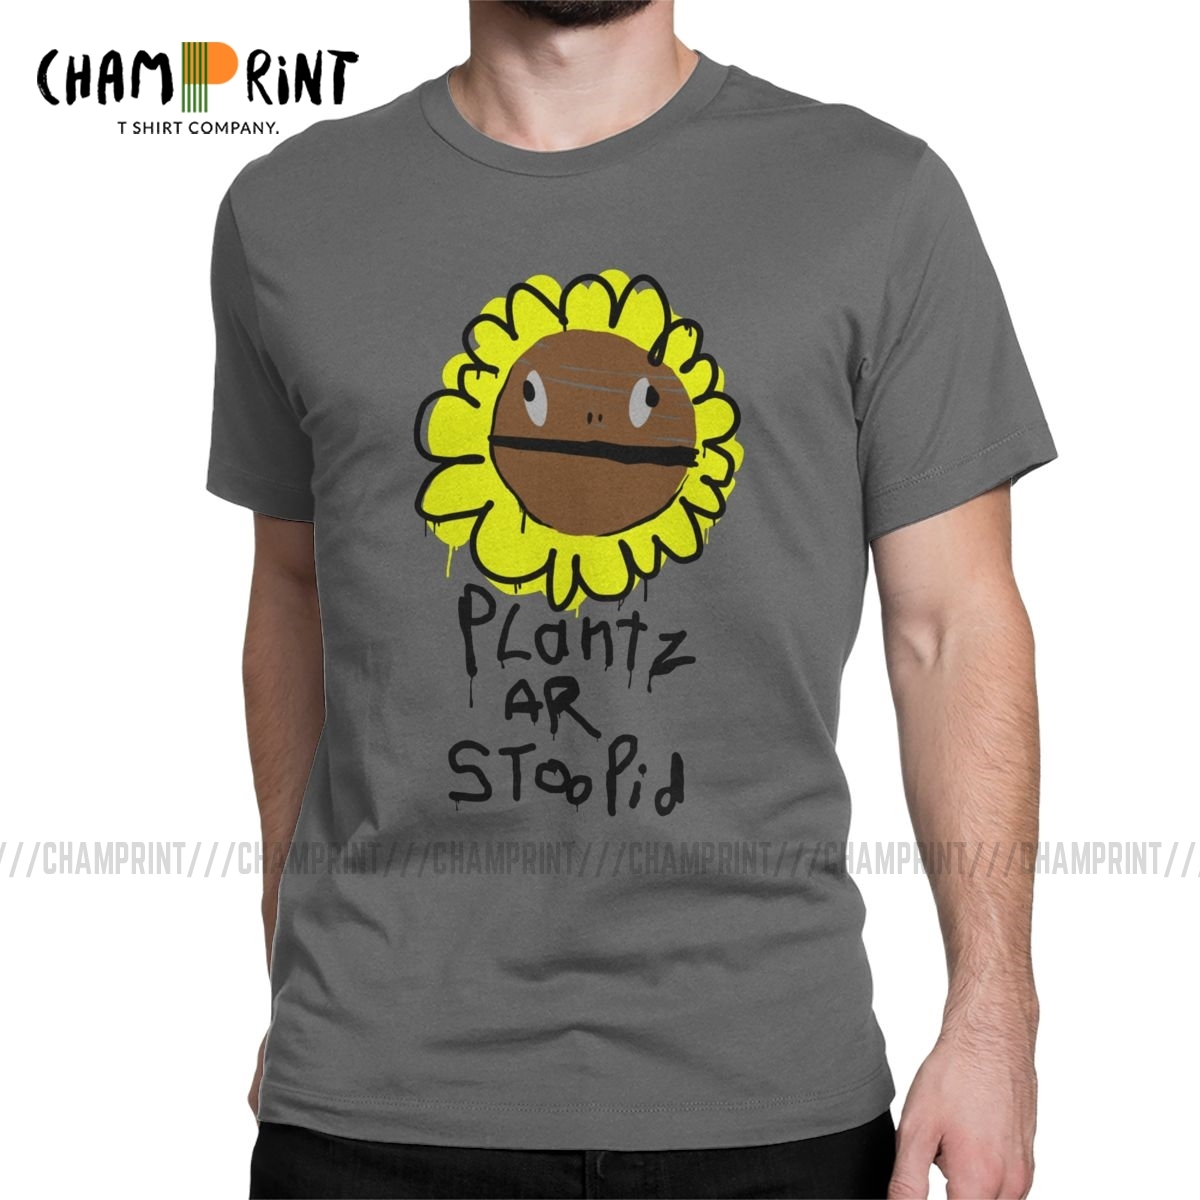 Novelty Plantz <font><b>Ar</b></font> Stoopid T-<font><b>Shirt</b></font> Men Cotton T <font><b>Shirts</b></font> Plants VS Zombies Kids PVZ Game Short Sleeve Tee <font><b>Shirt</b></font> Plus Size Clothing image